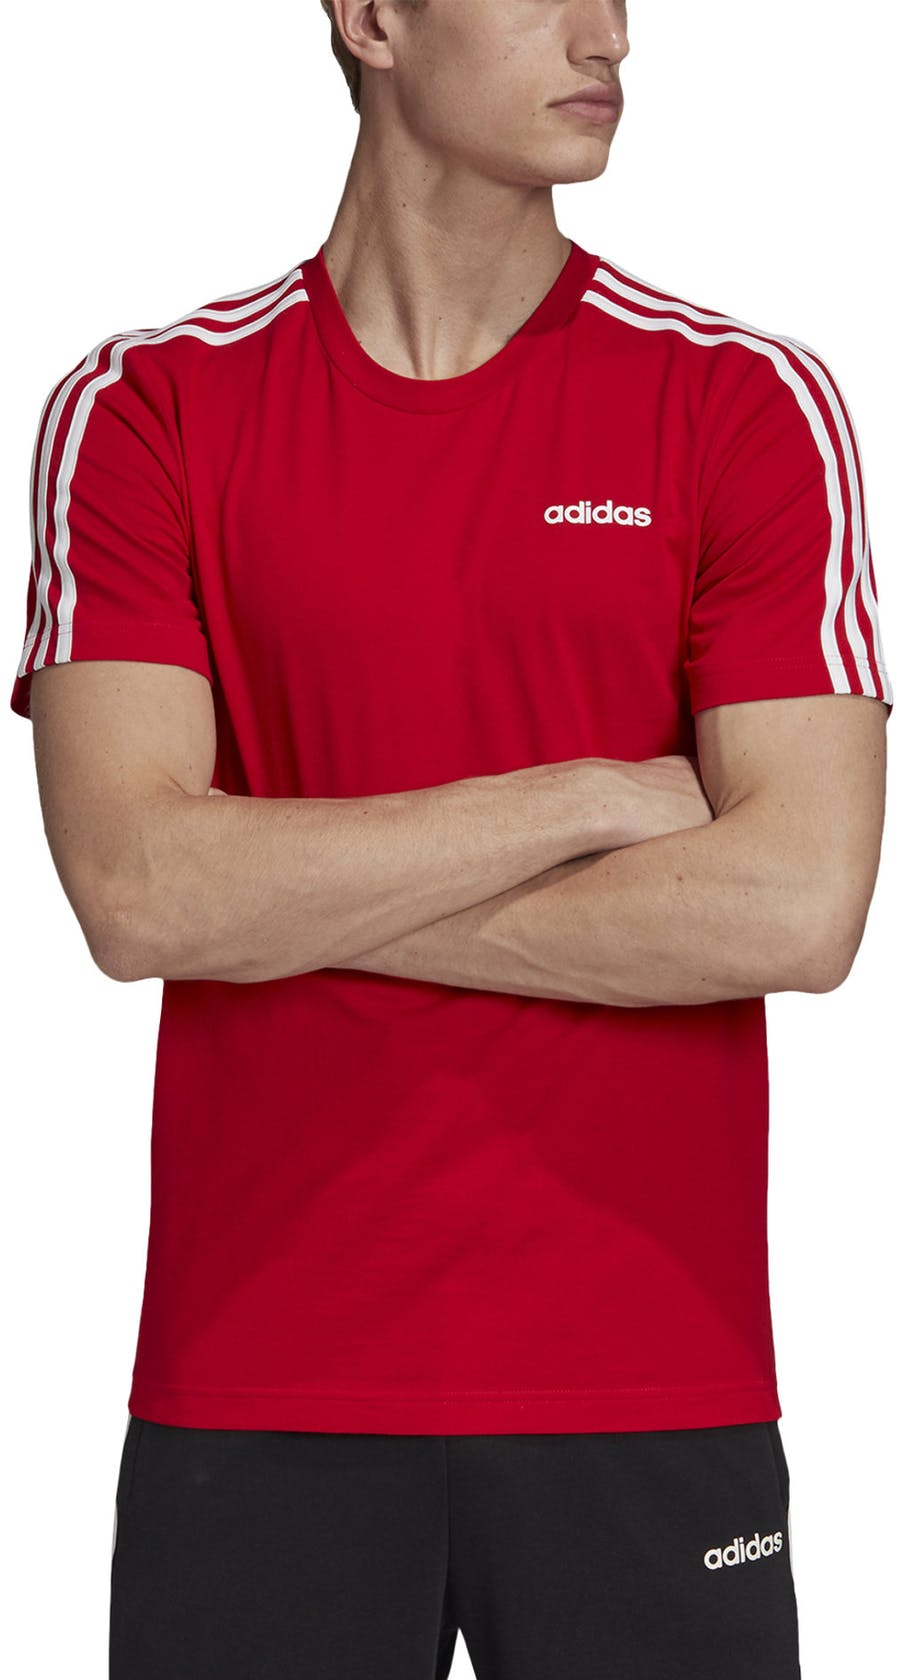 adidas Essentials 3 Stripes - t-shirt fitness - uomo